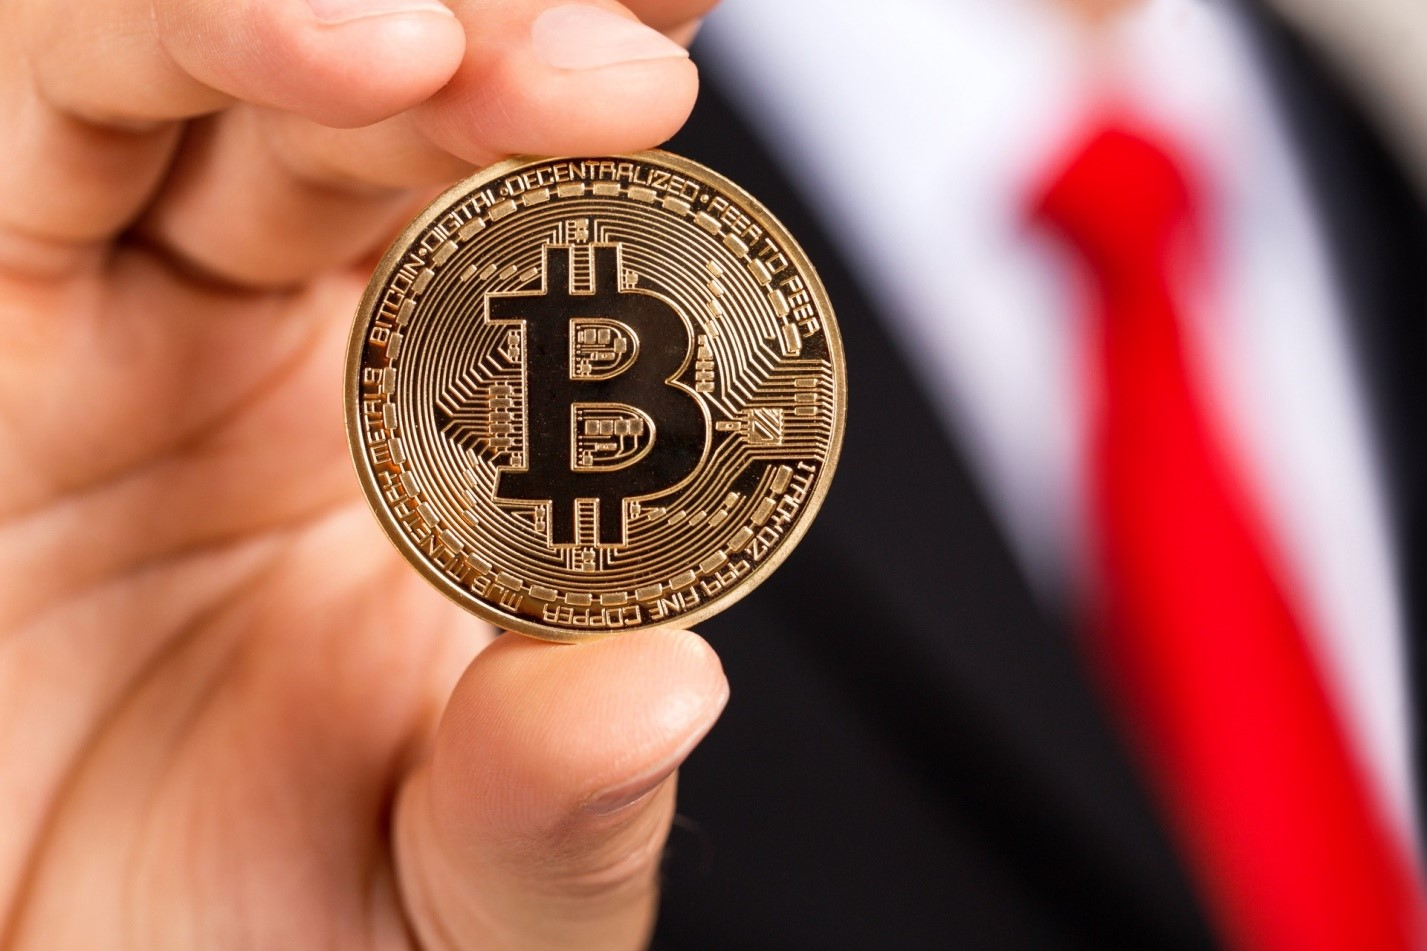 Morgan Stanley Plans Bitcoin Trading for Clients